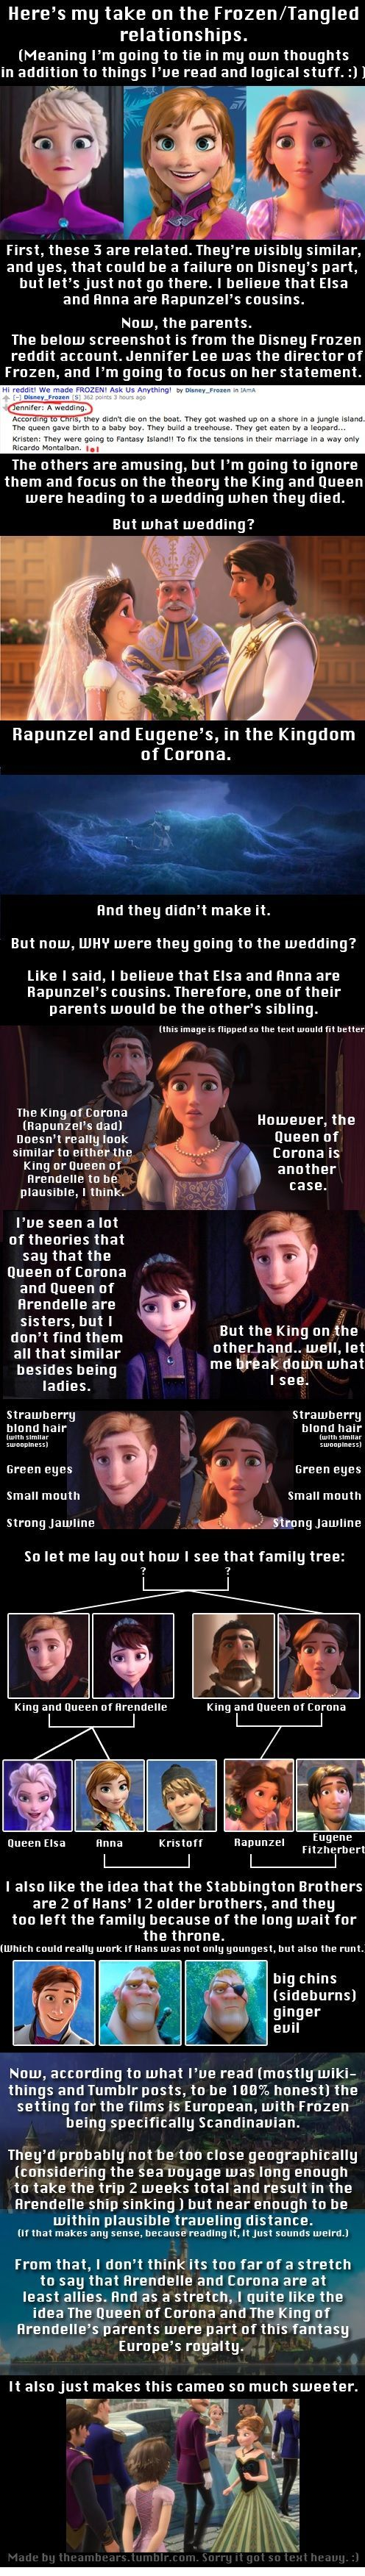 she forgot to mention that the wedding took place three years before Elsa was crowned queen. When did tangled come out? THREE YEARS AGO. And hello Tarzan